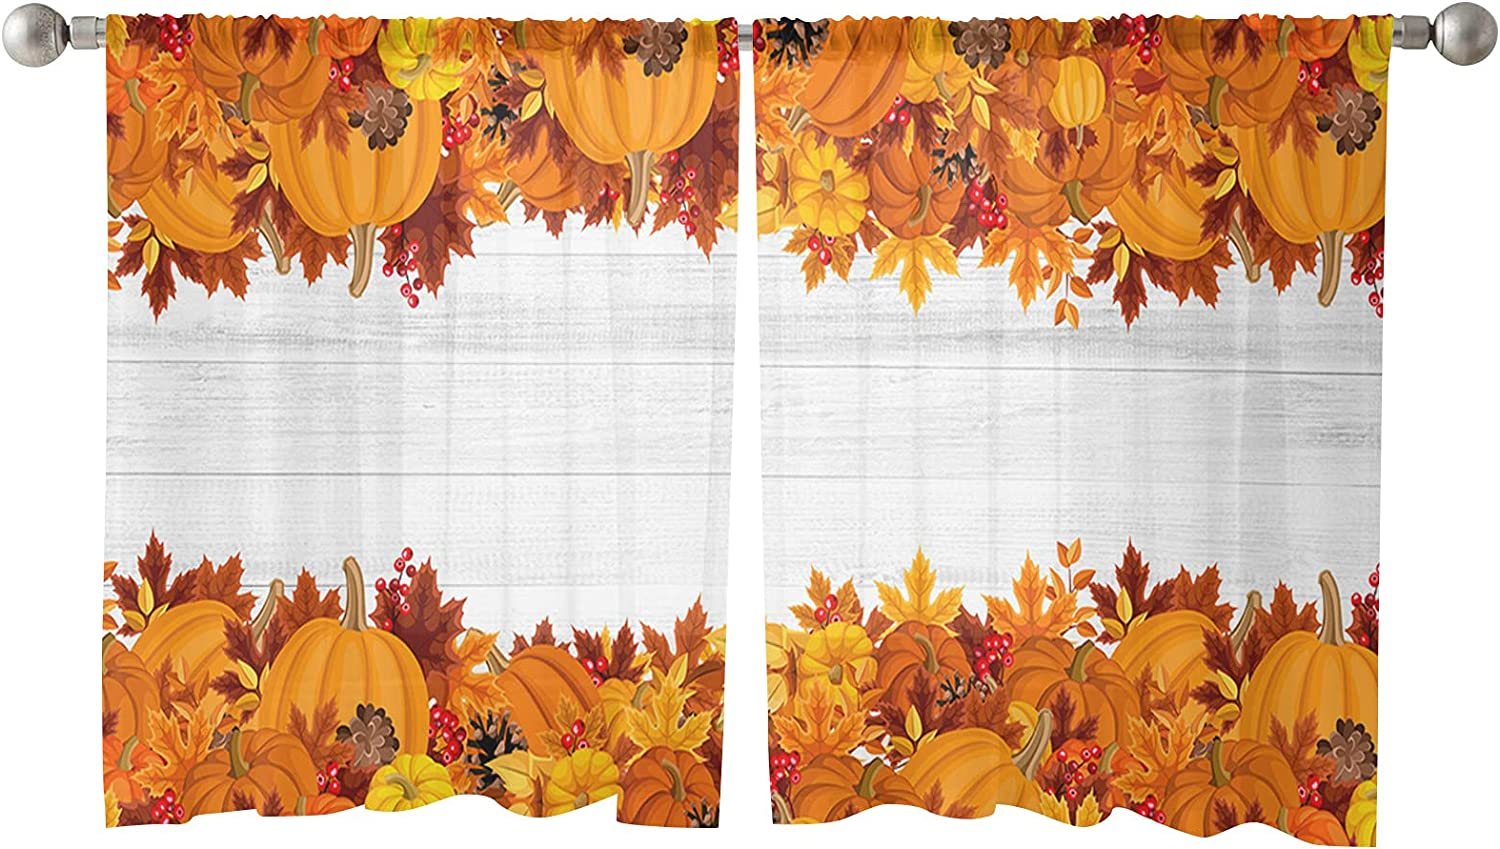 Semi Sheer Curtains 2 Window Privacy Panels Treatments Popular product safety